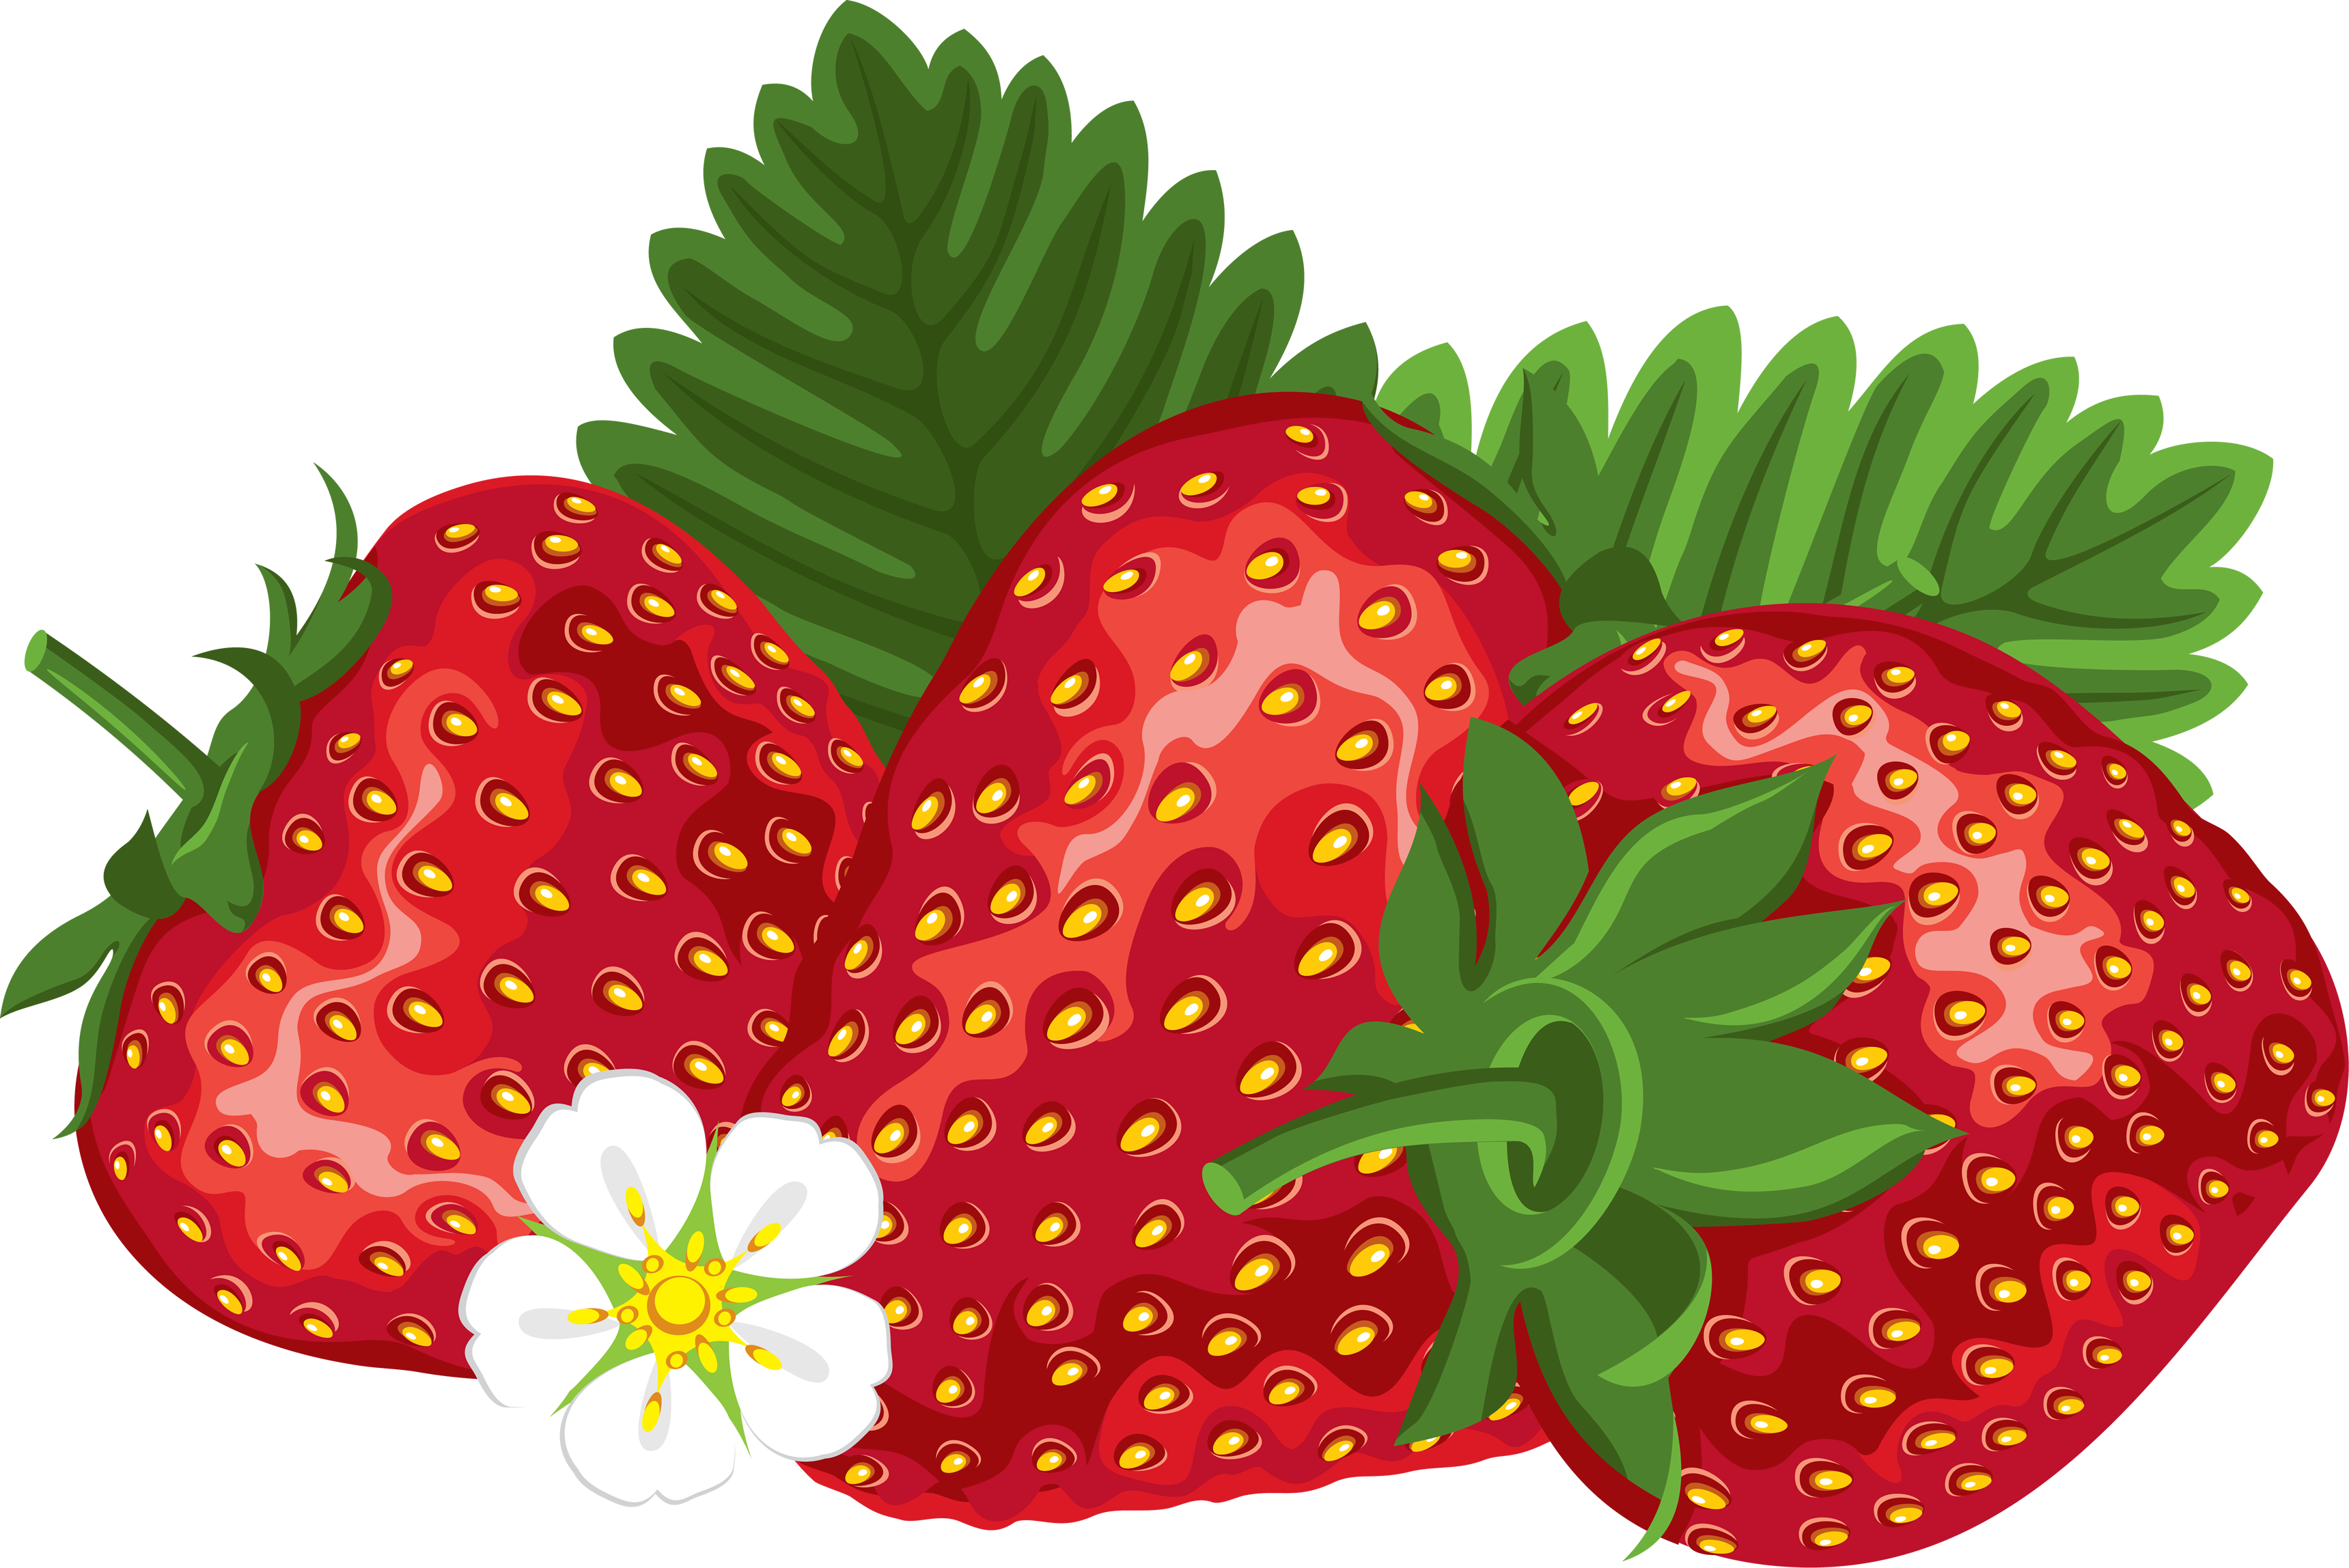 Strawberries clipart wallpaper.  strawberry category free